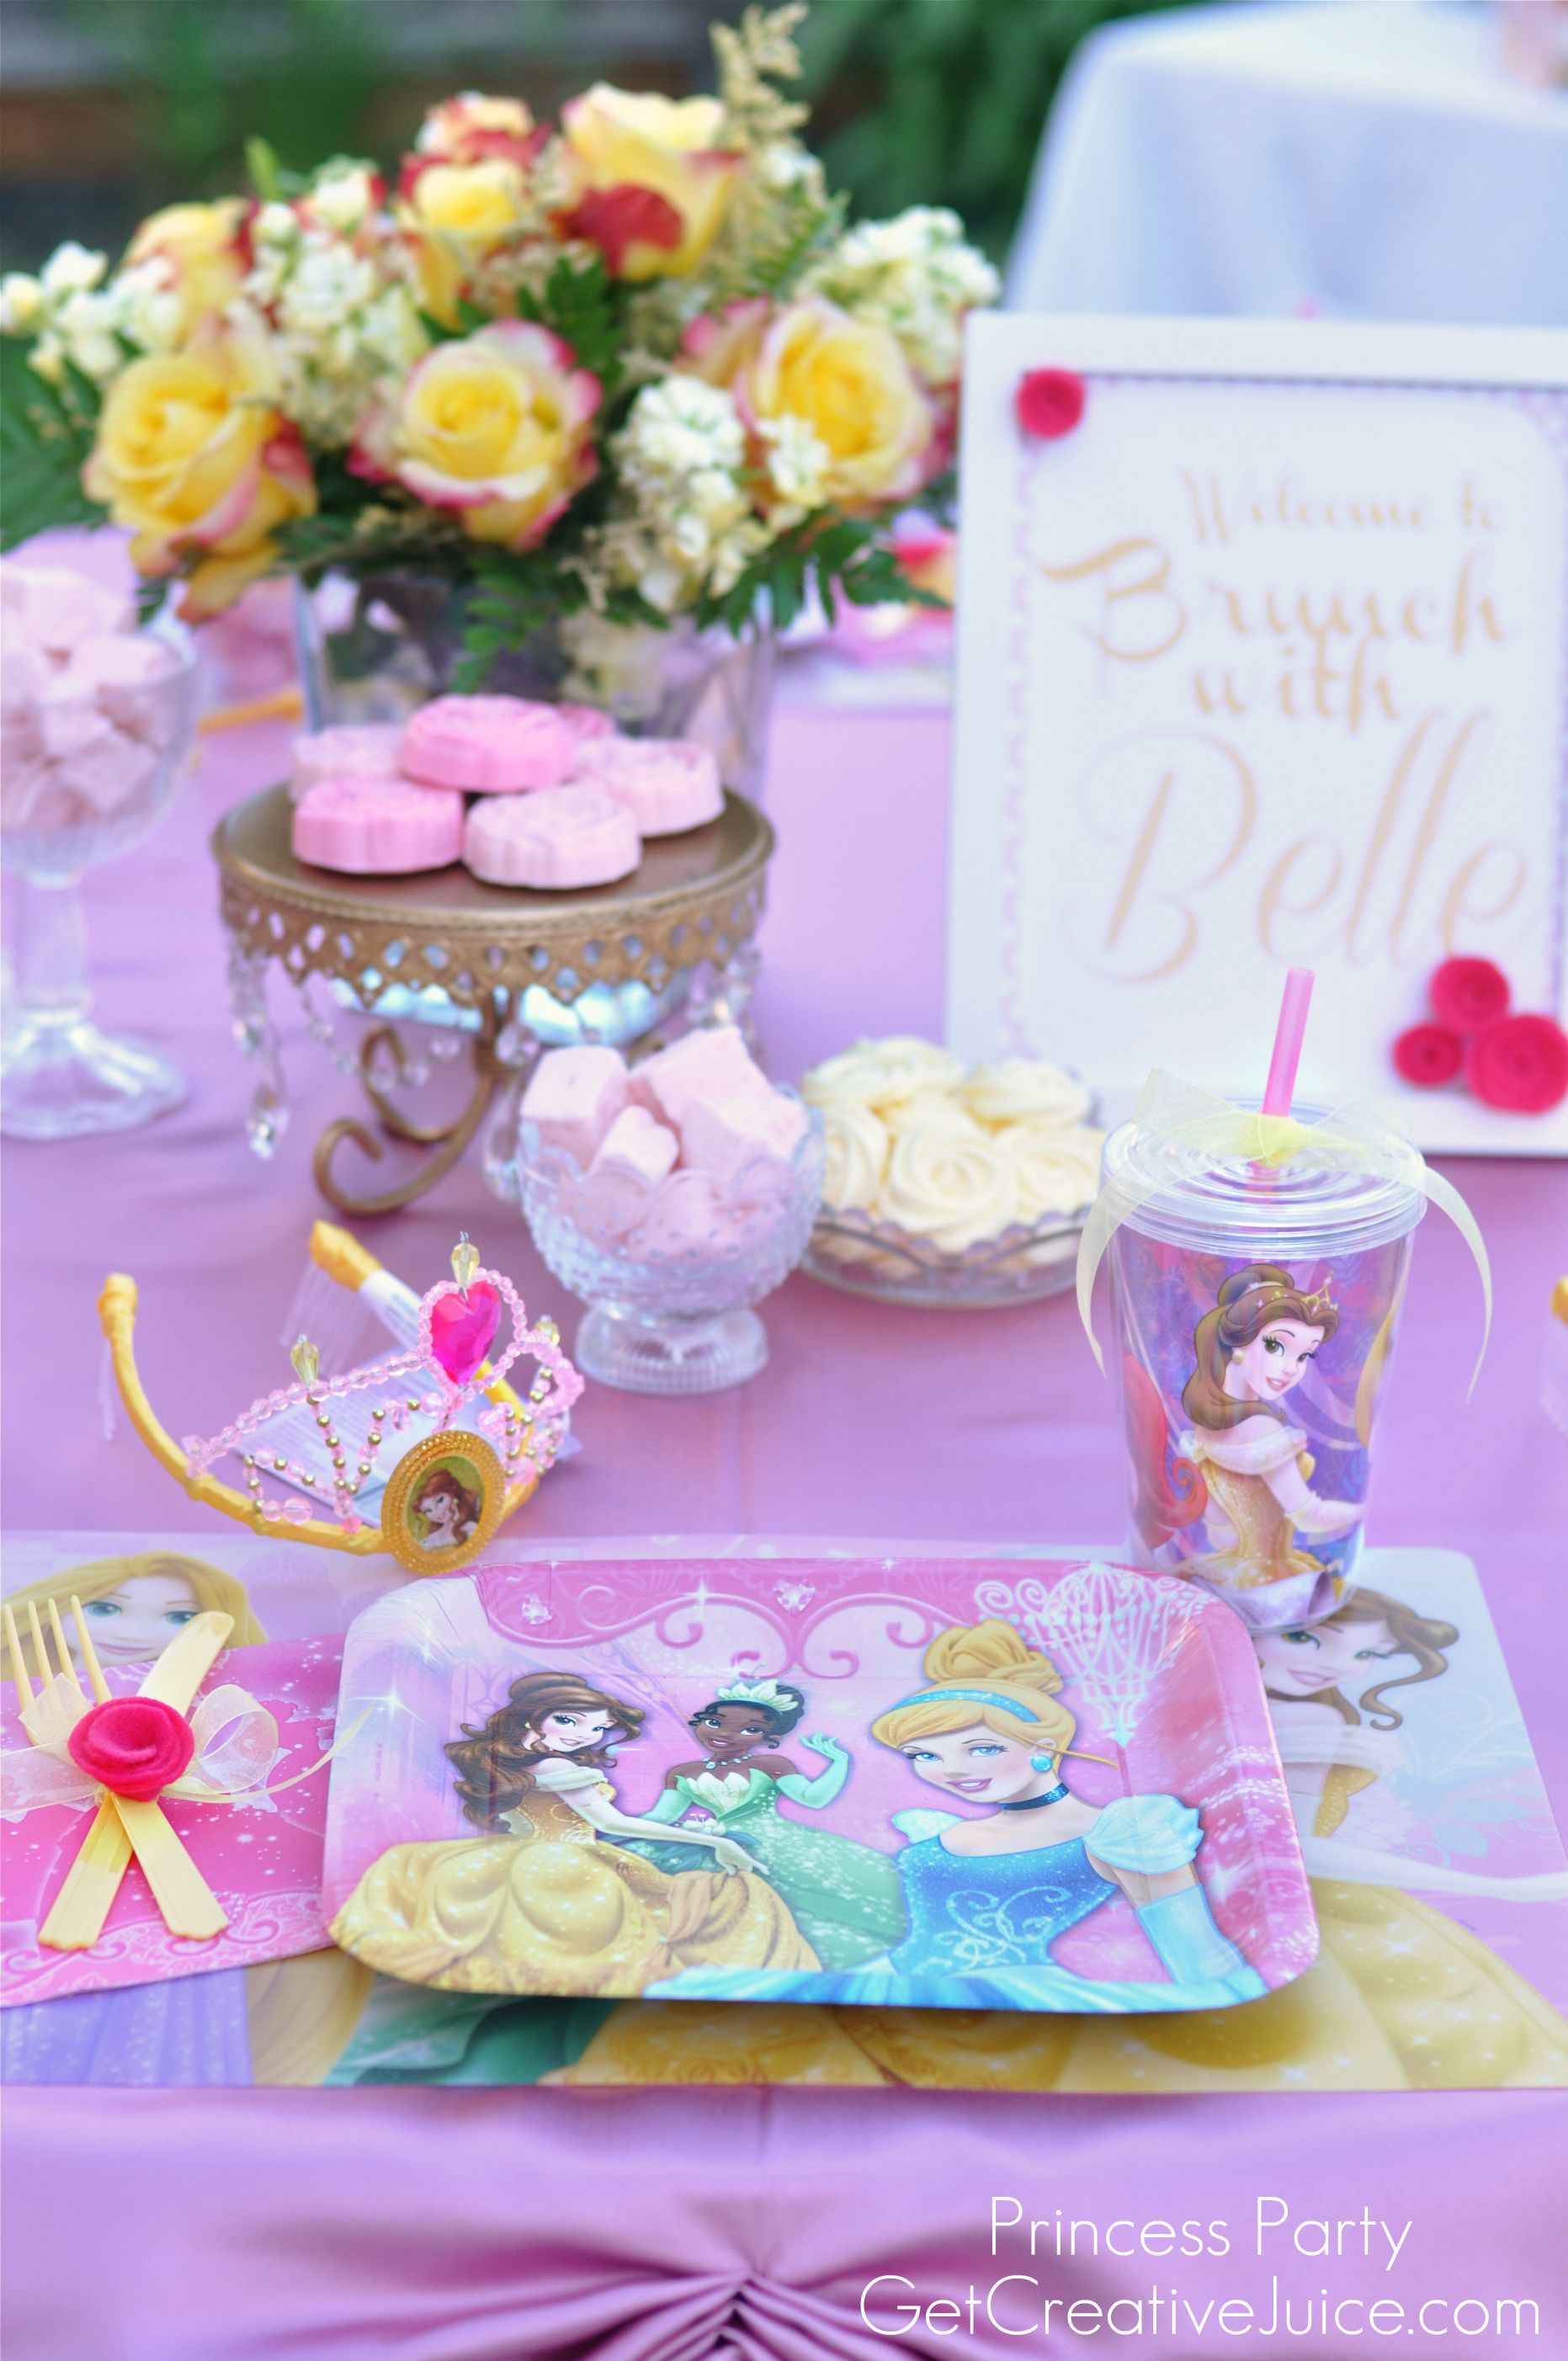 Princess Party Table Setting Ideas And Decorations Part 27